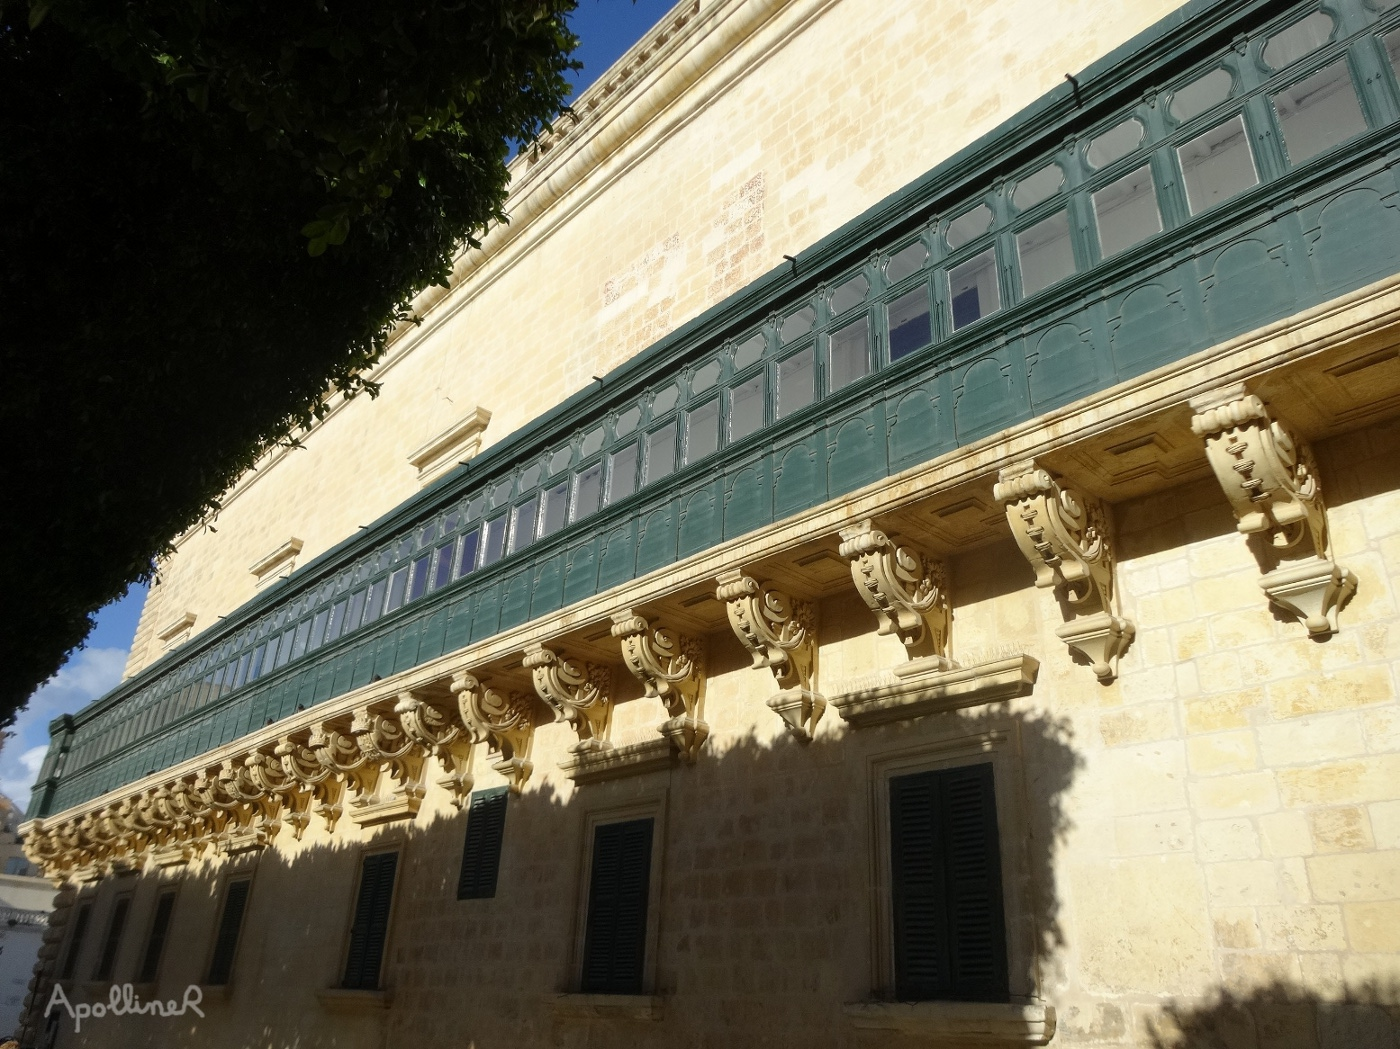 enclosed balcony of the Grandmaster's Palace in Valletta